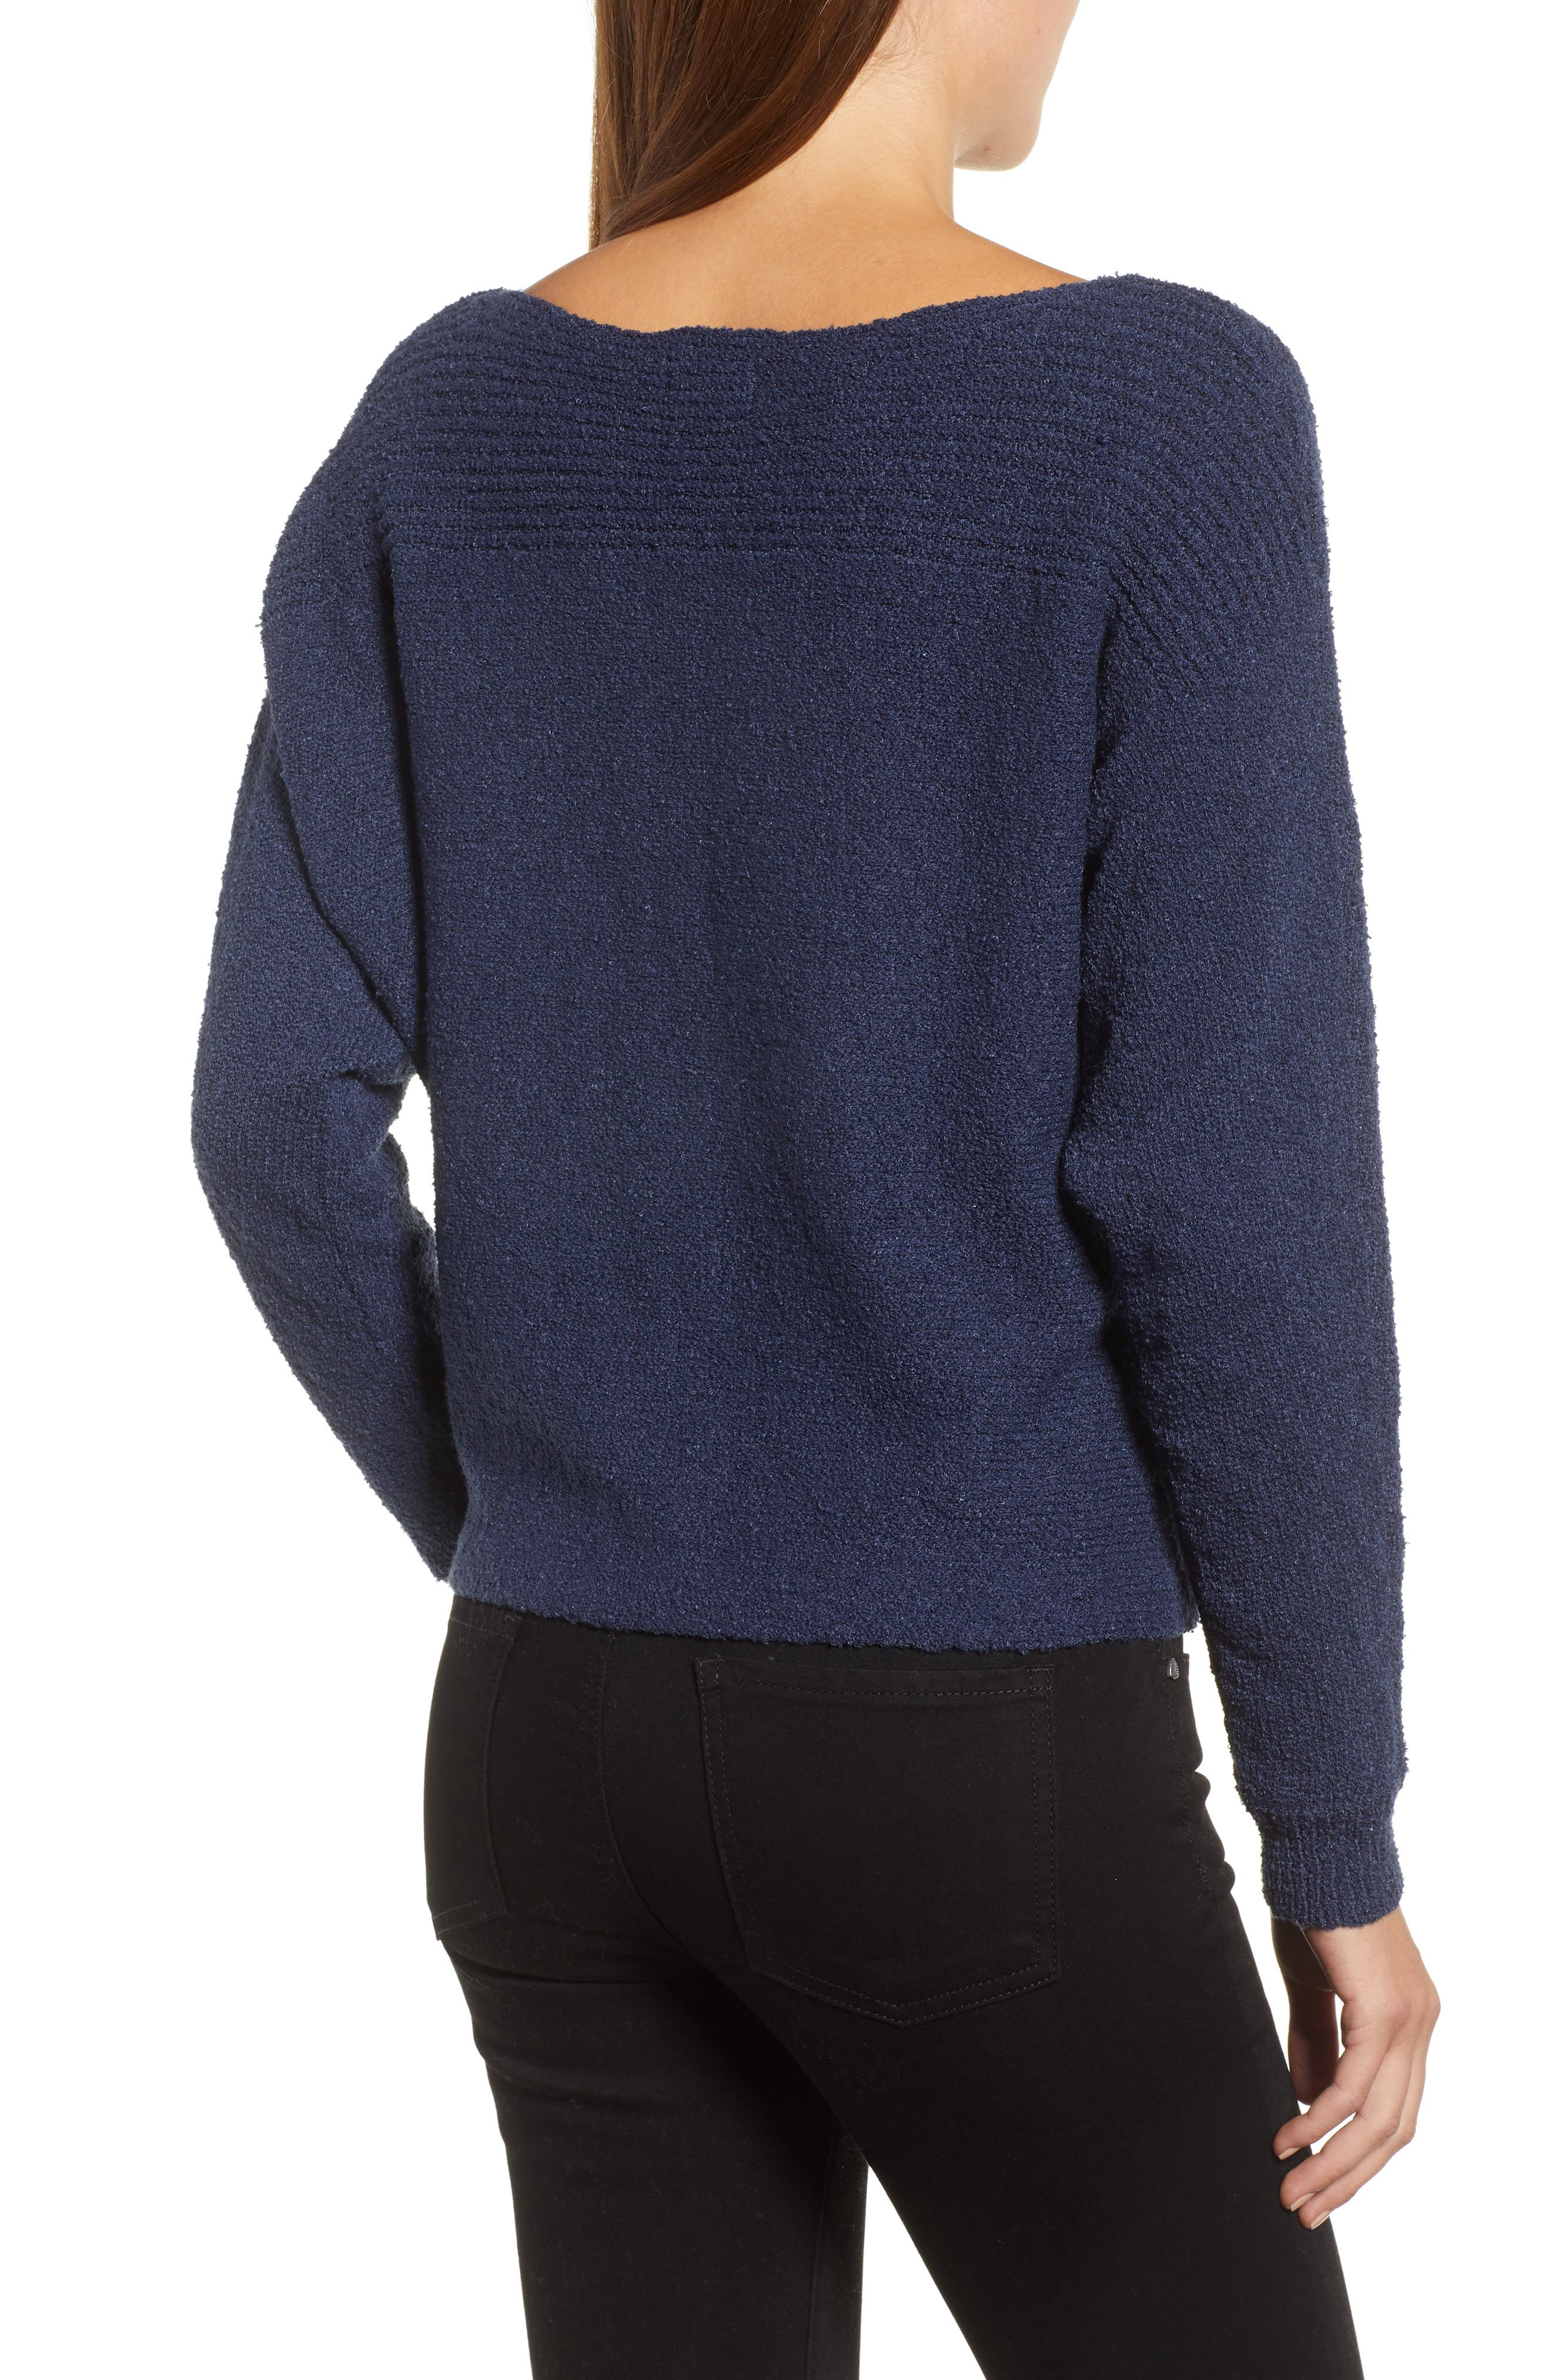 Calson<sup>®</sup> Dolman Sleeve Sweater,                             Alternate thumbnail 2, color,                             410